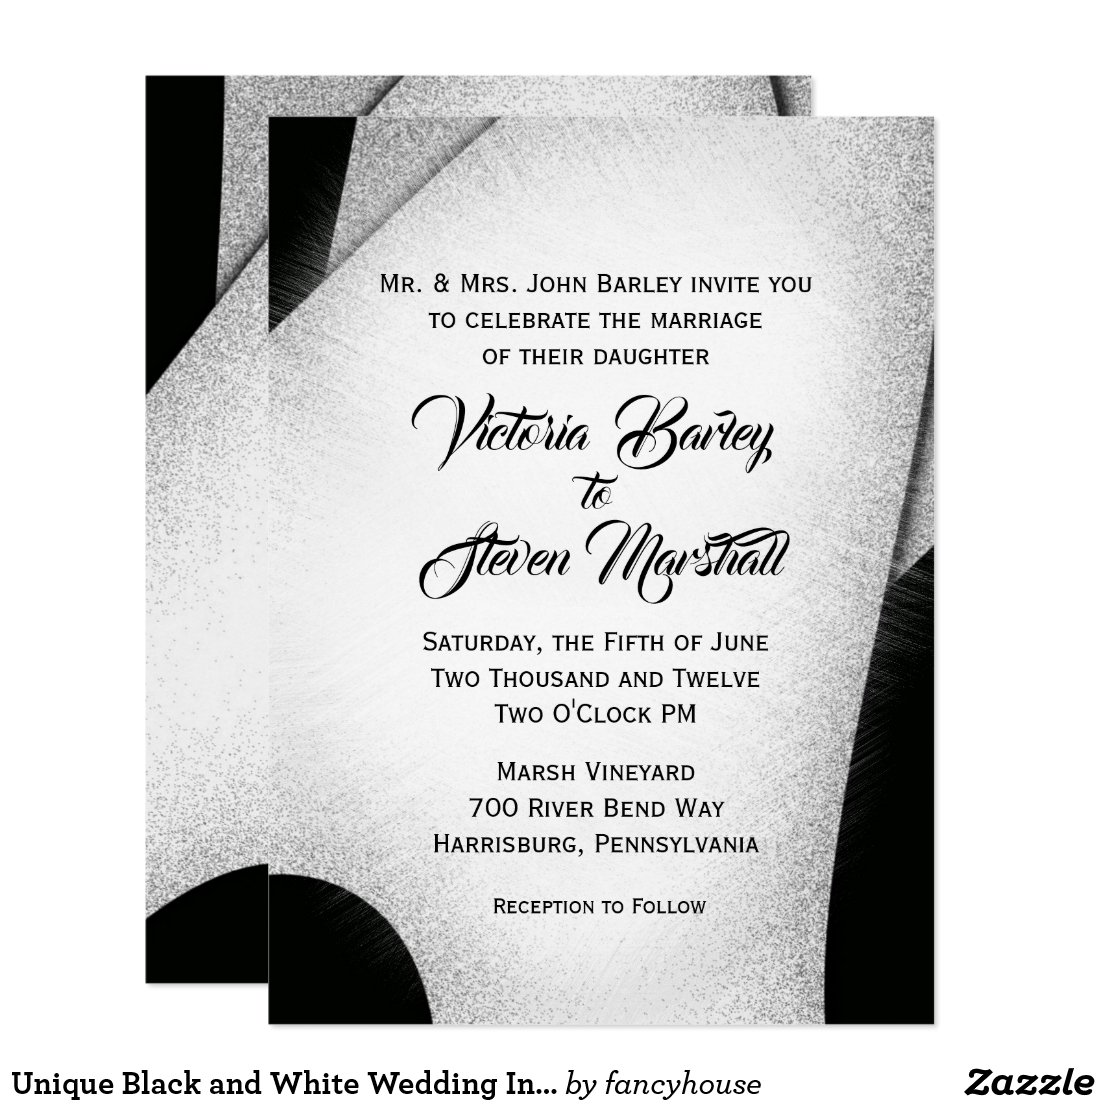 Unique Black and White Wedding Invitation